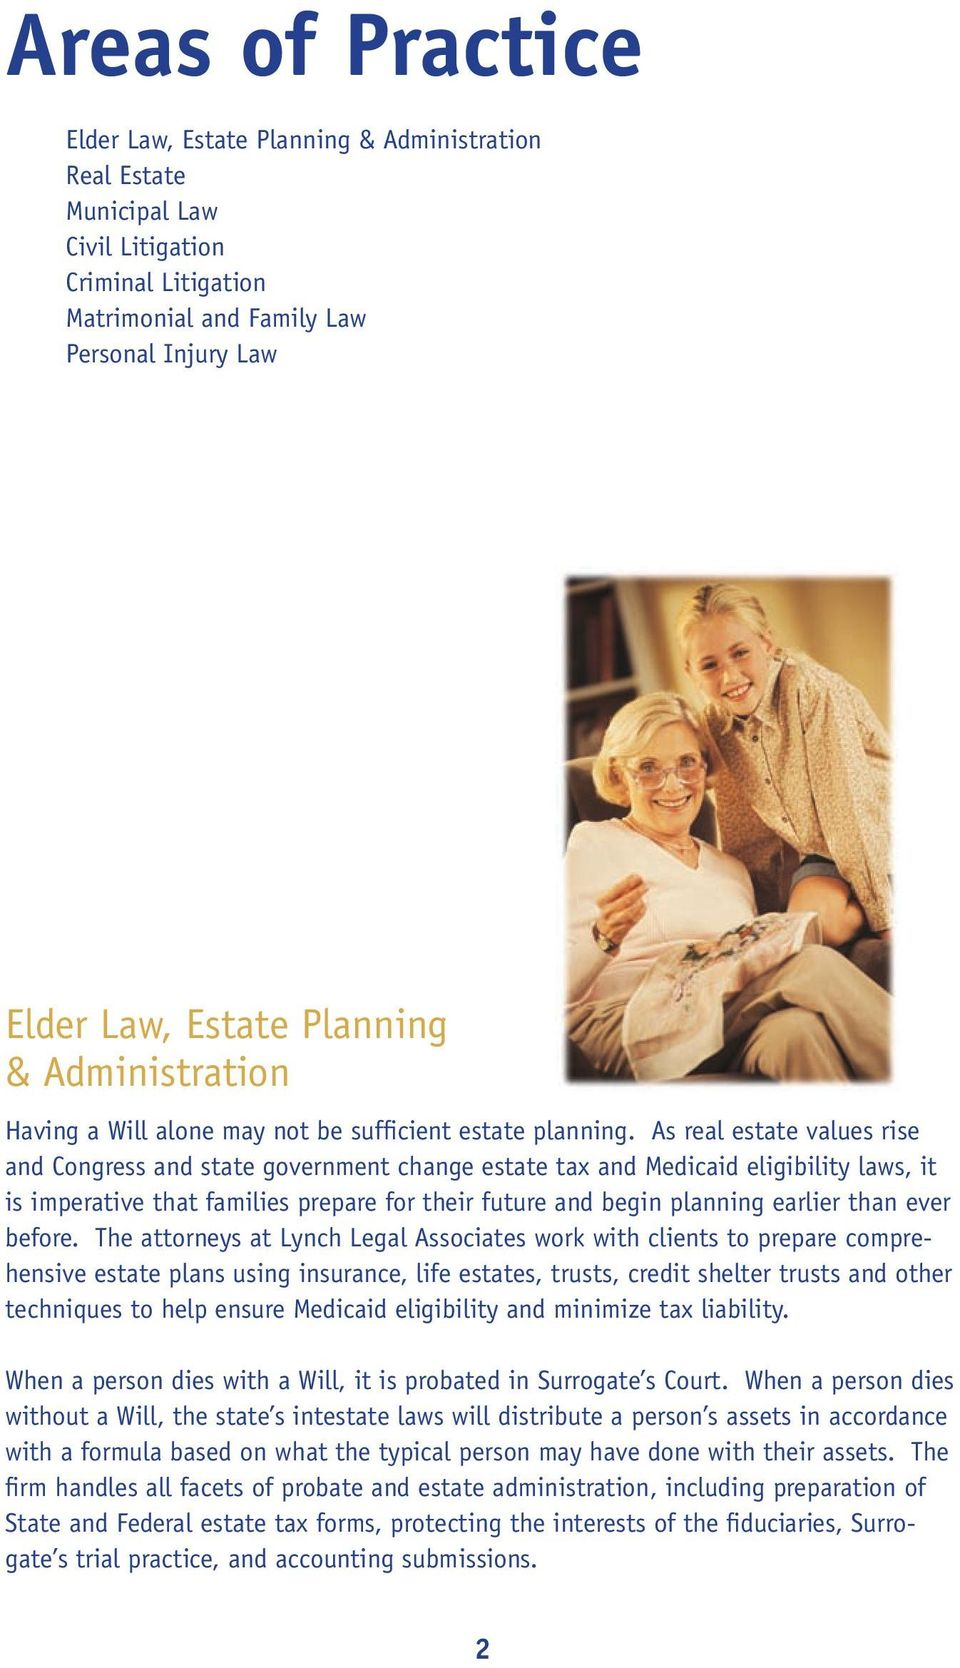 As real estate values rise and Congress and state government change estate tax and Medicaid eligibility laws, it is imperative that families prepare for their future and begin planning earlier than